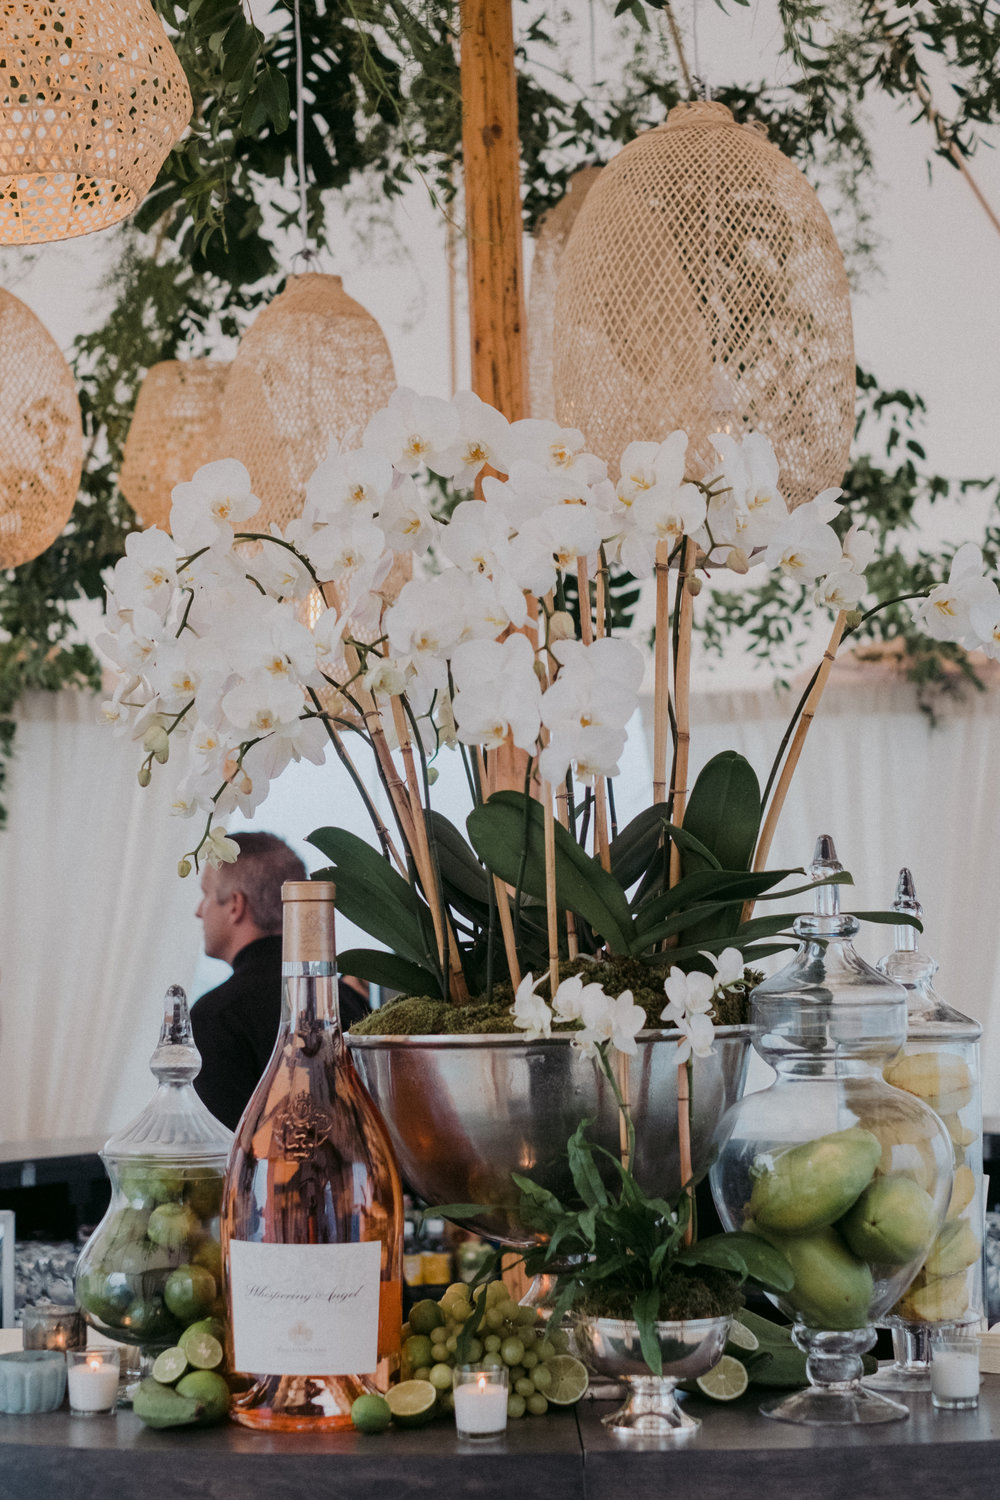 Same Sex Wedding in Provincetown, MA. Destination wedding planned by Nicole Simeral. Coastal Chic Wedding, Travel Wedding, Sperry Sailcloth Tent Wedding, bar flowers, orchid planter, orchids, trophy cup, whispering angel, gracious wedding